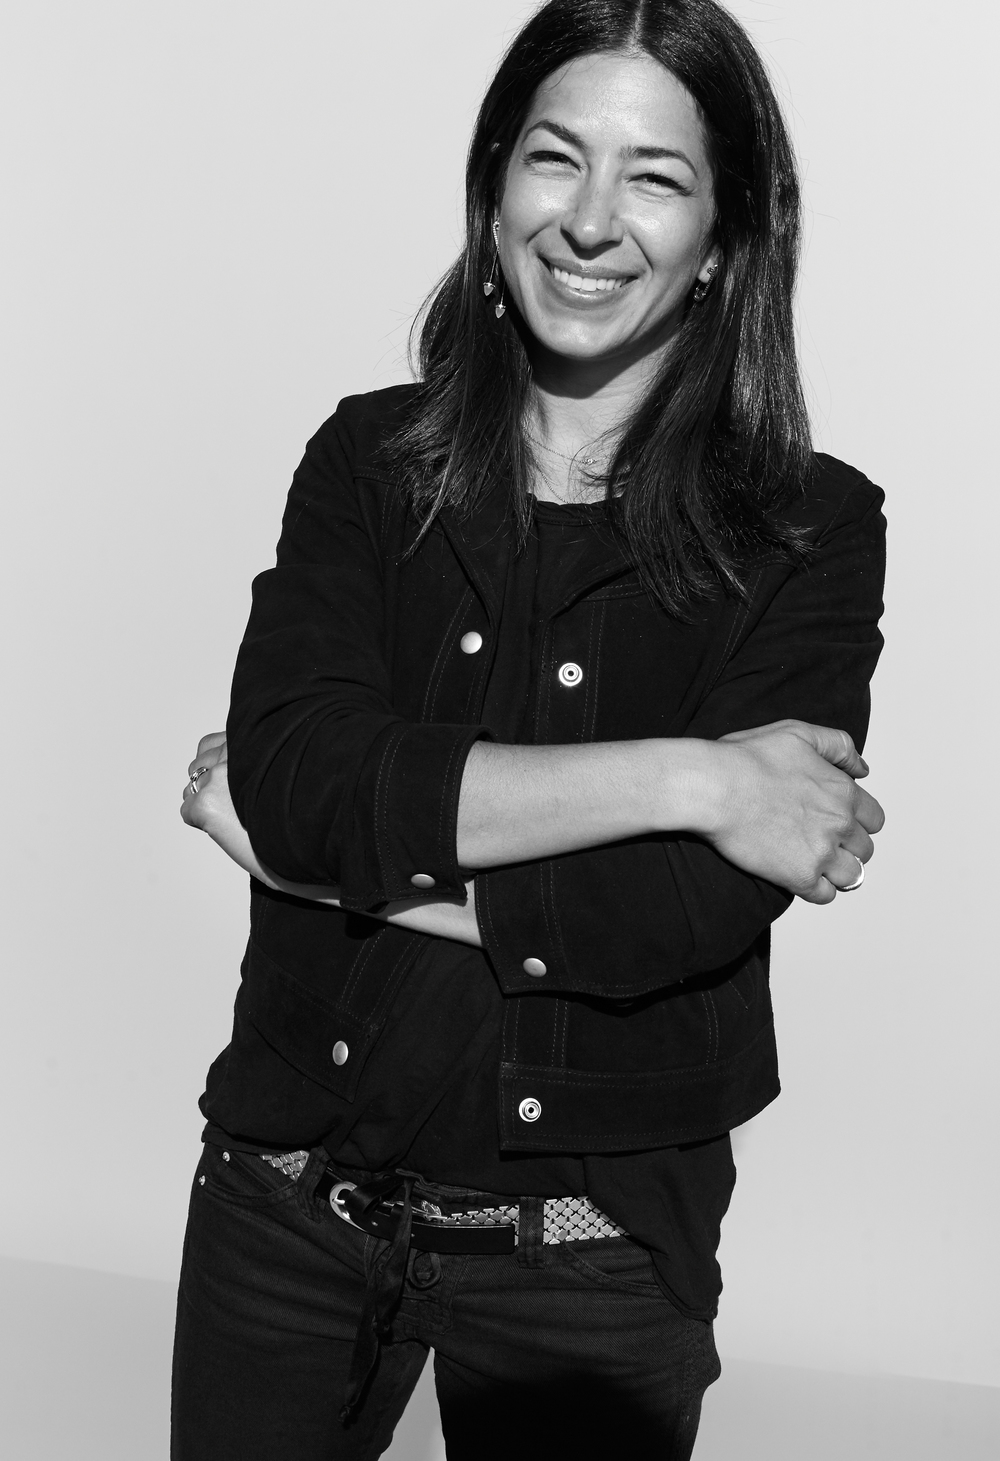 Rebecca Minkoff photographed by Kate Owen black and white portrait #powertrip